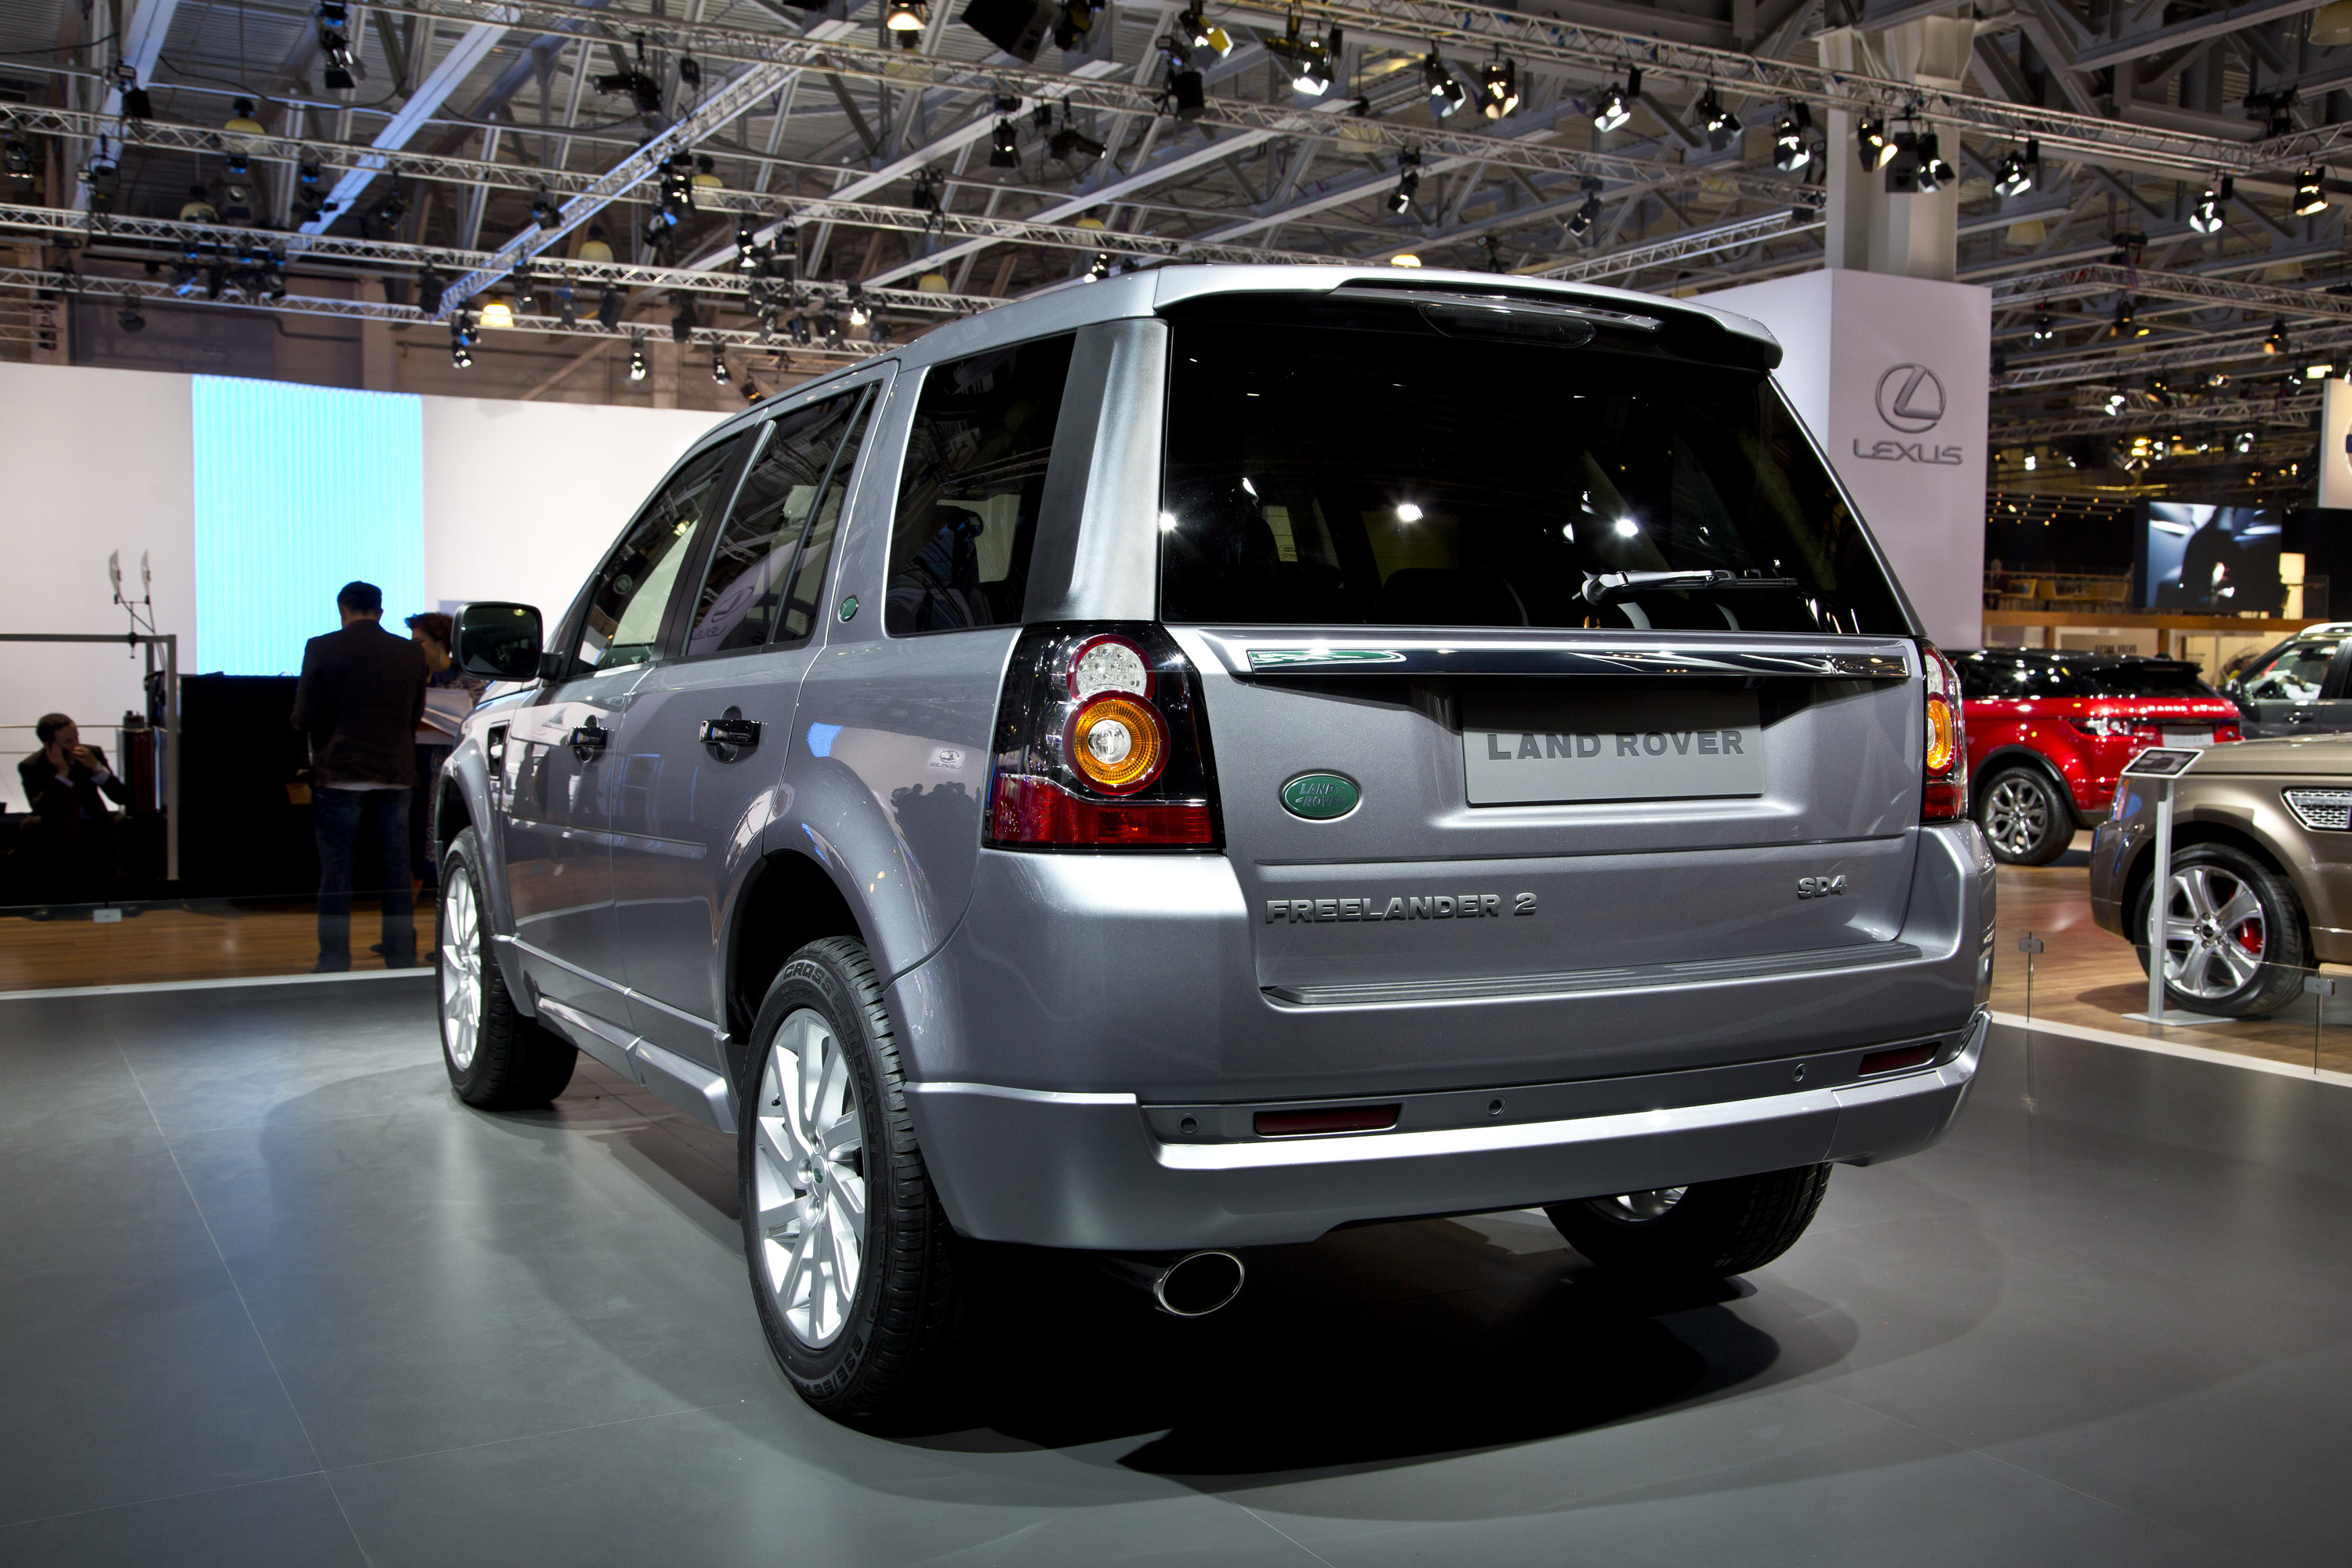 Land Rover Freelander 2 Moscow 2012 - Picture 73900